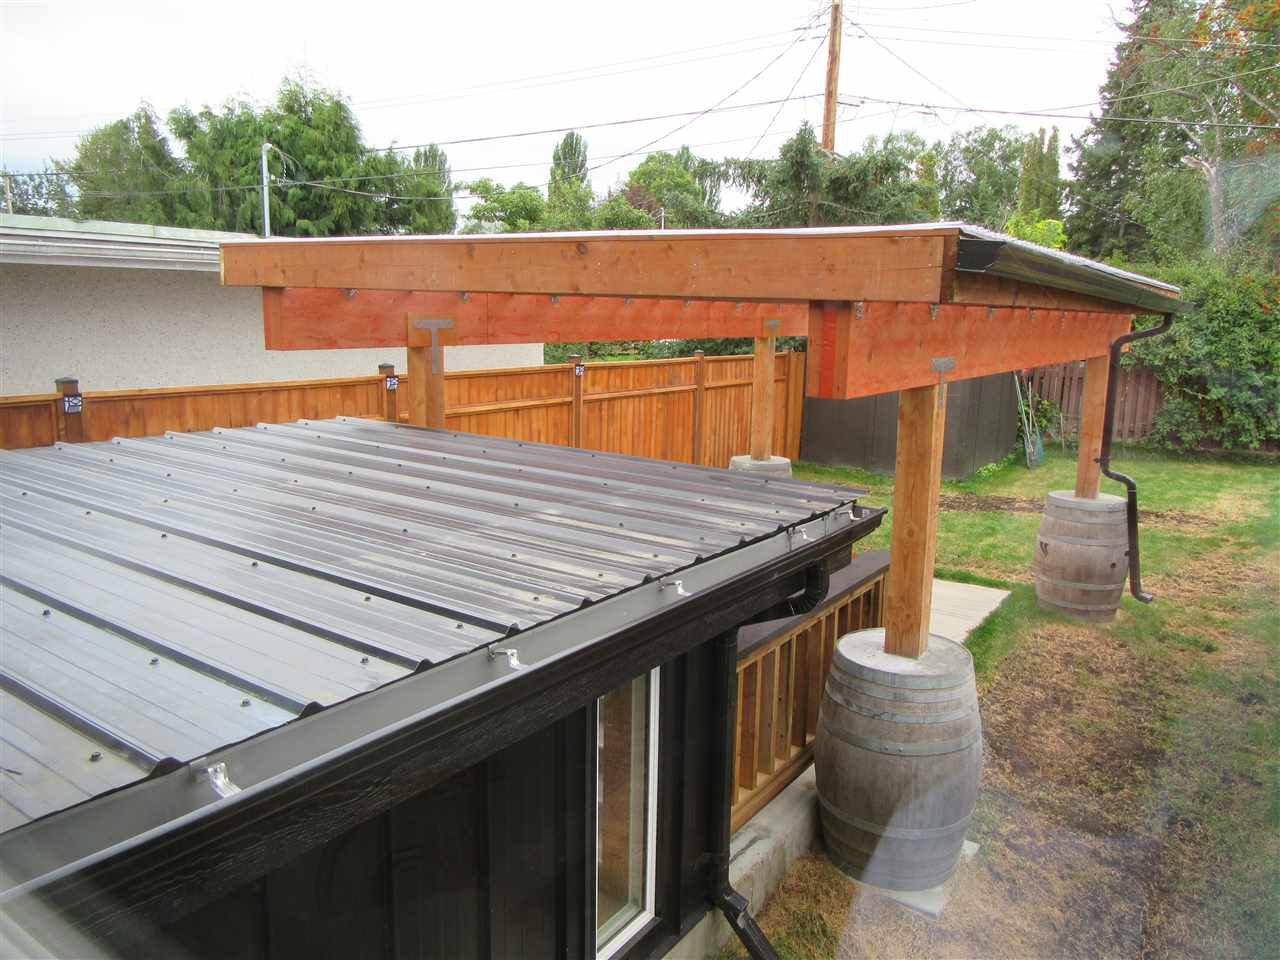 """Photo 10: Photos: 121 FREEMAN Street in Prince George: Nechako View House for sale in """"NECHAKO"""" (PG City Central (Zone 72))  : MLS®# R2493268"""